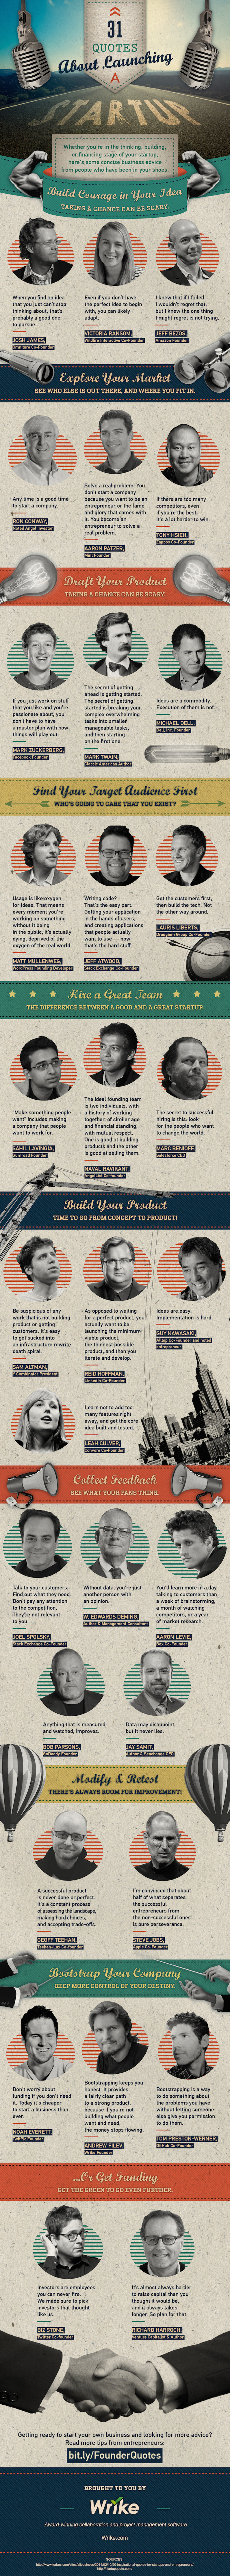 inspiring-quotes-to-launch-startup-infographic